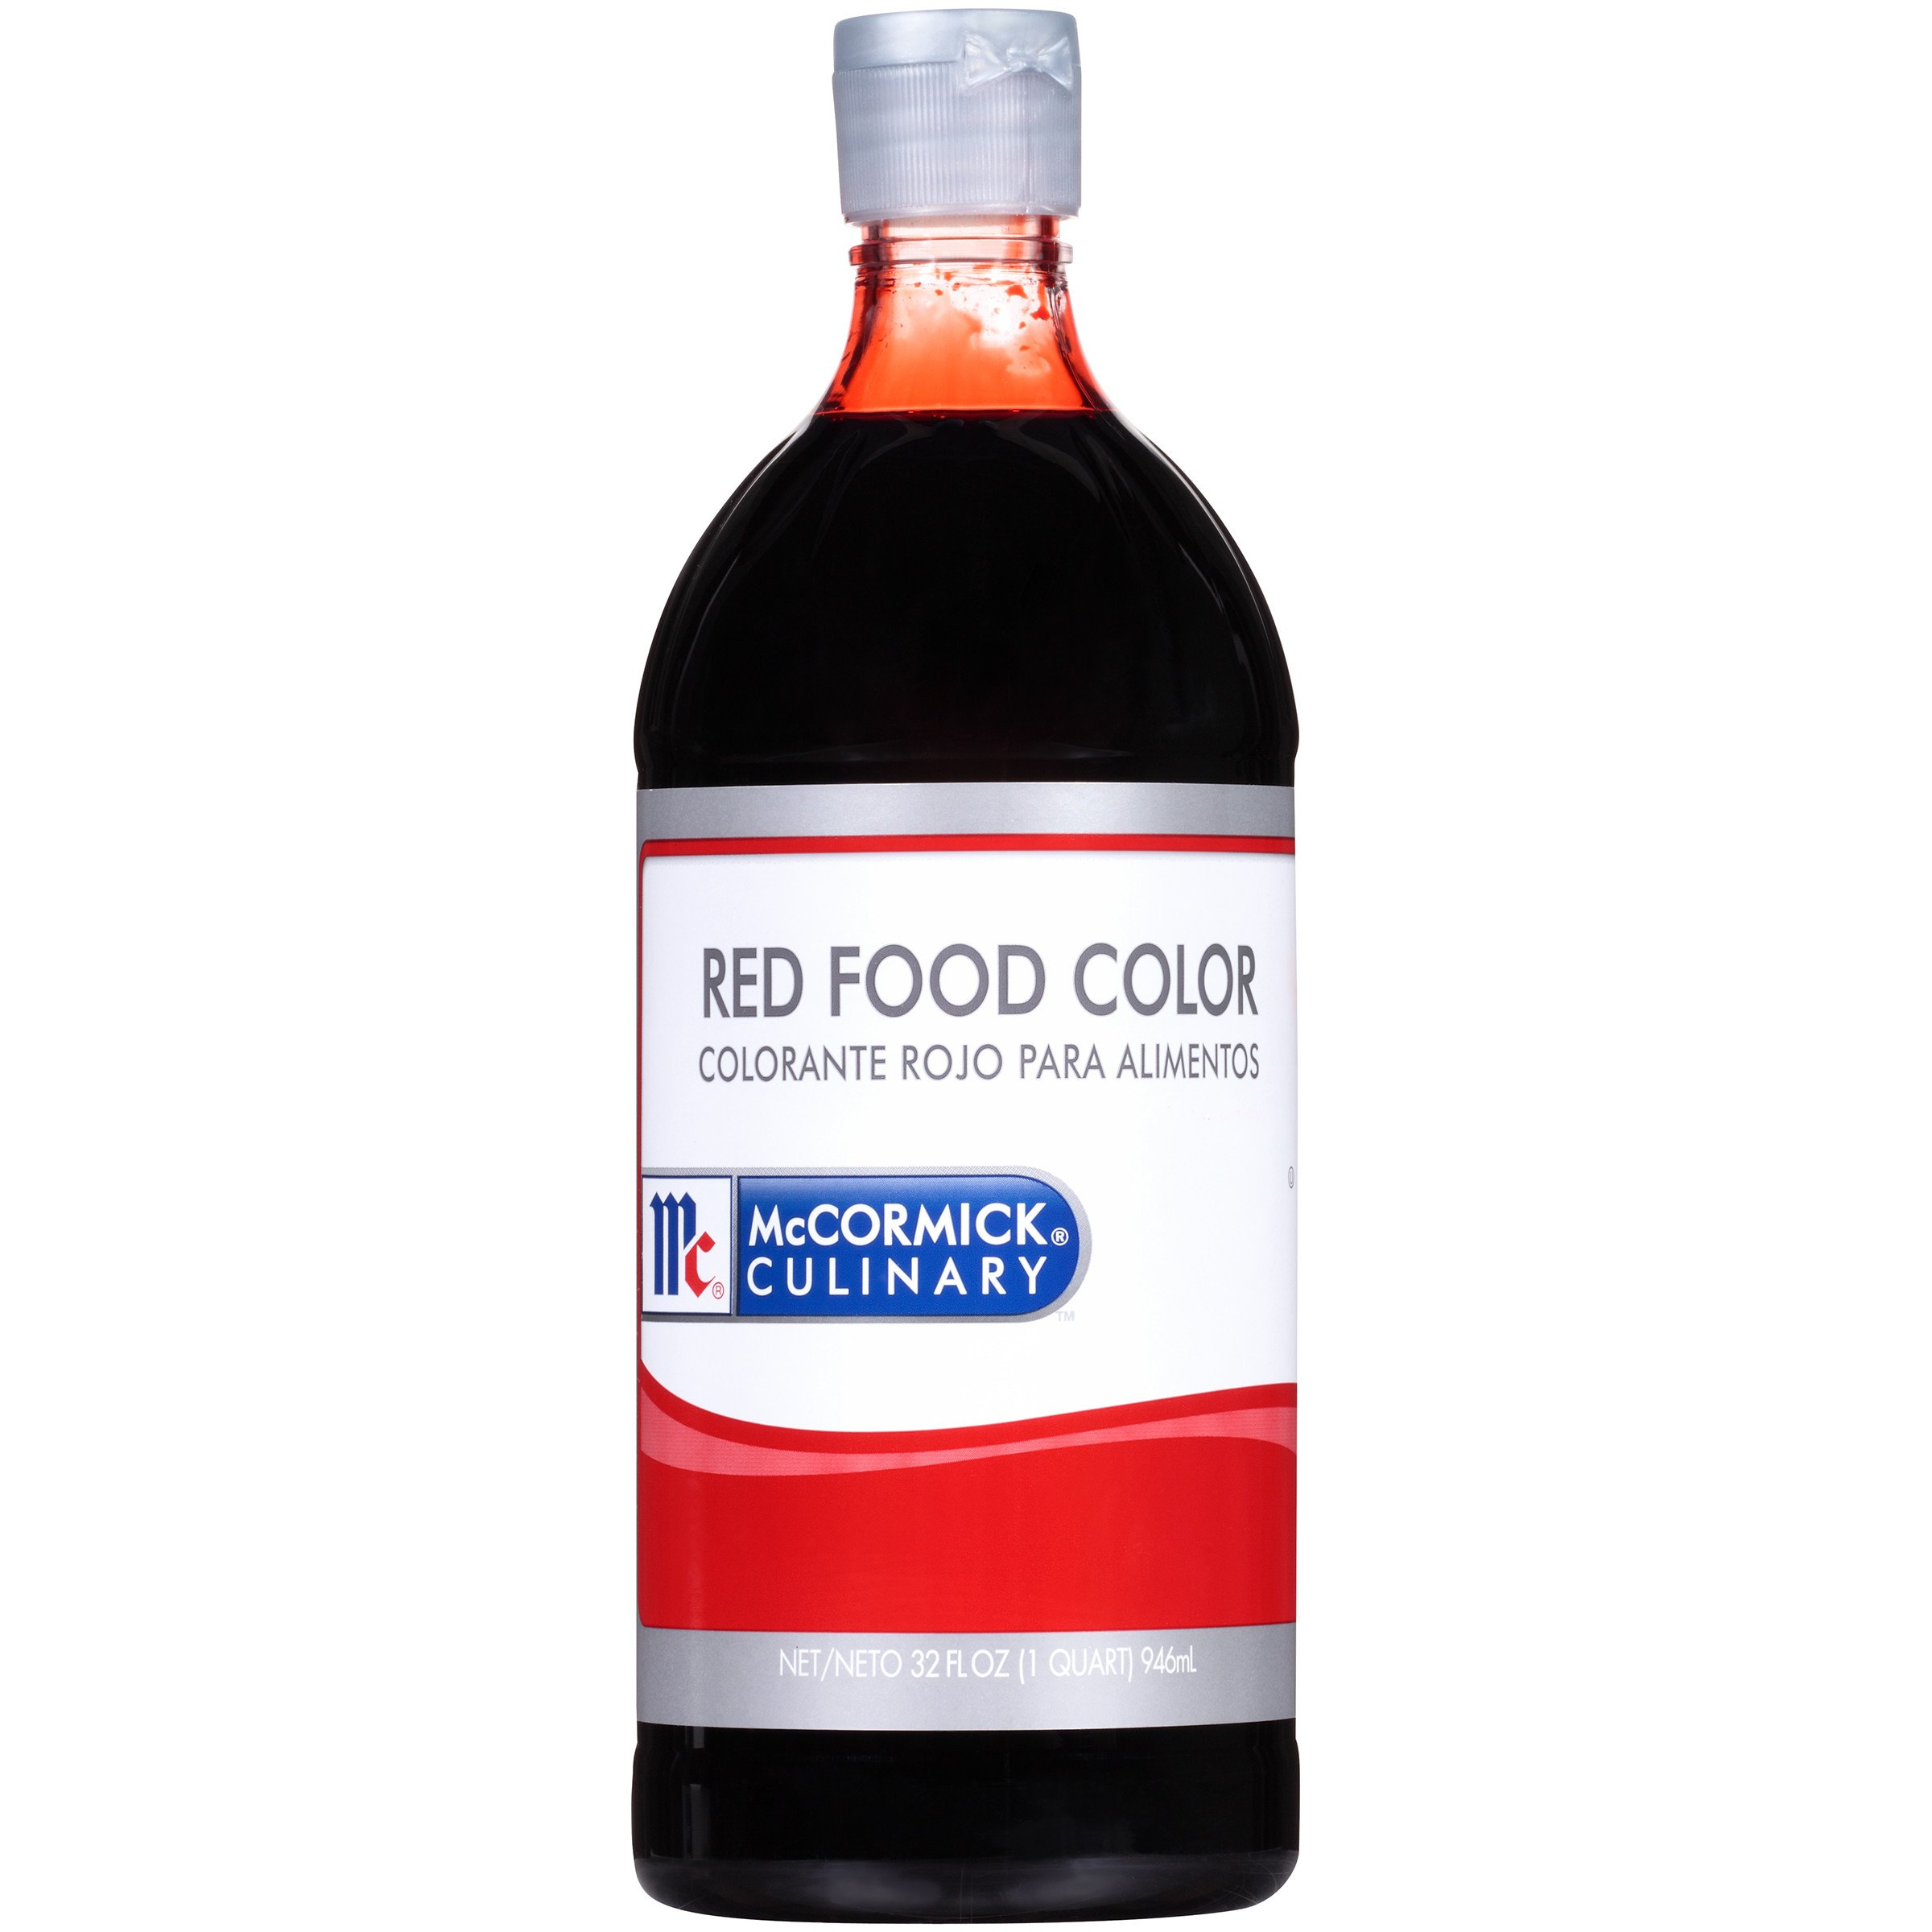 McCormick Culinary Red Food Color, 1 qt, Bakers Food Coloring